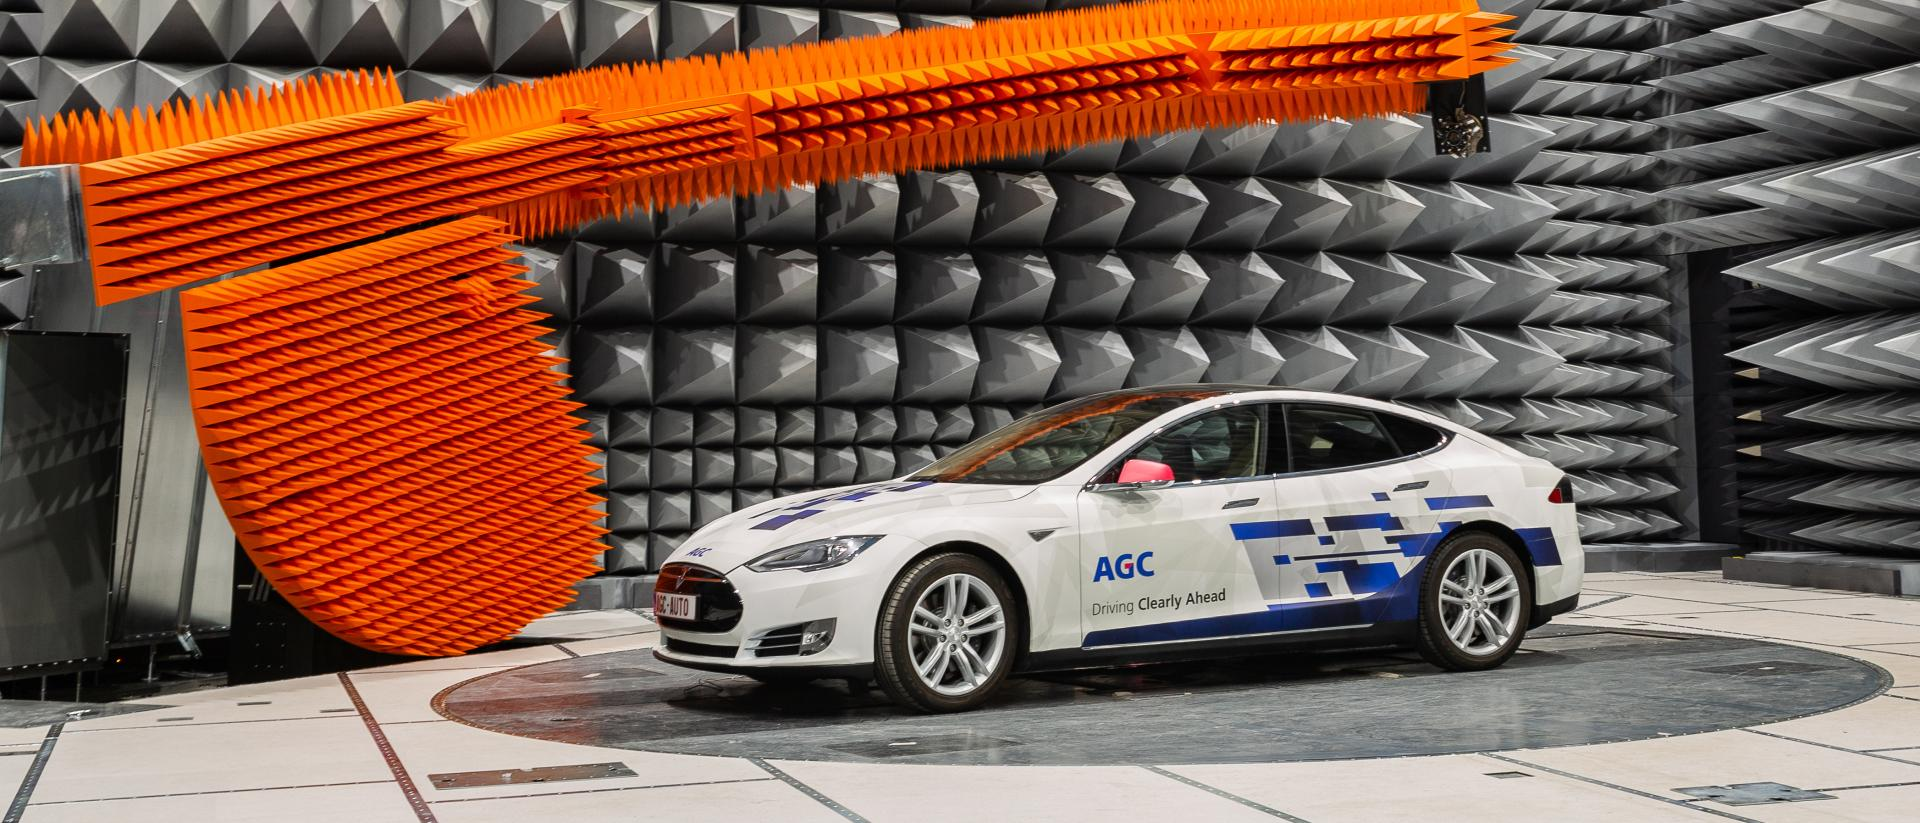 Anechoic chamber: an essential tool for developing connectivity